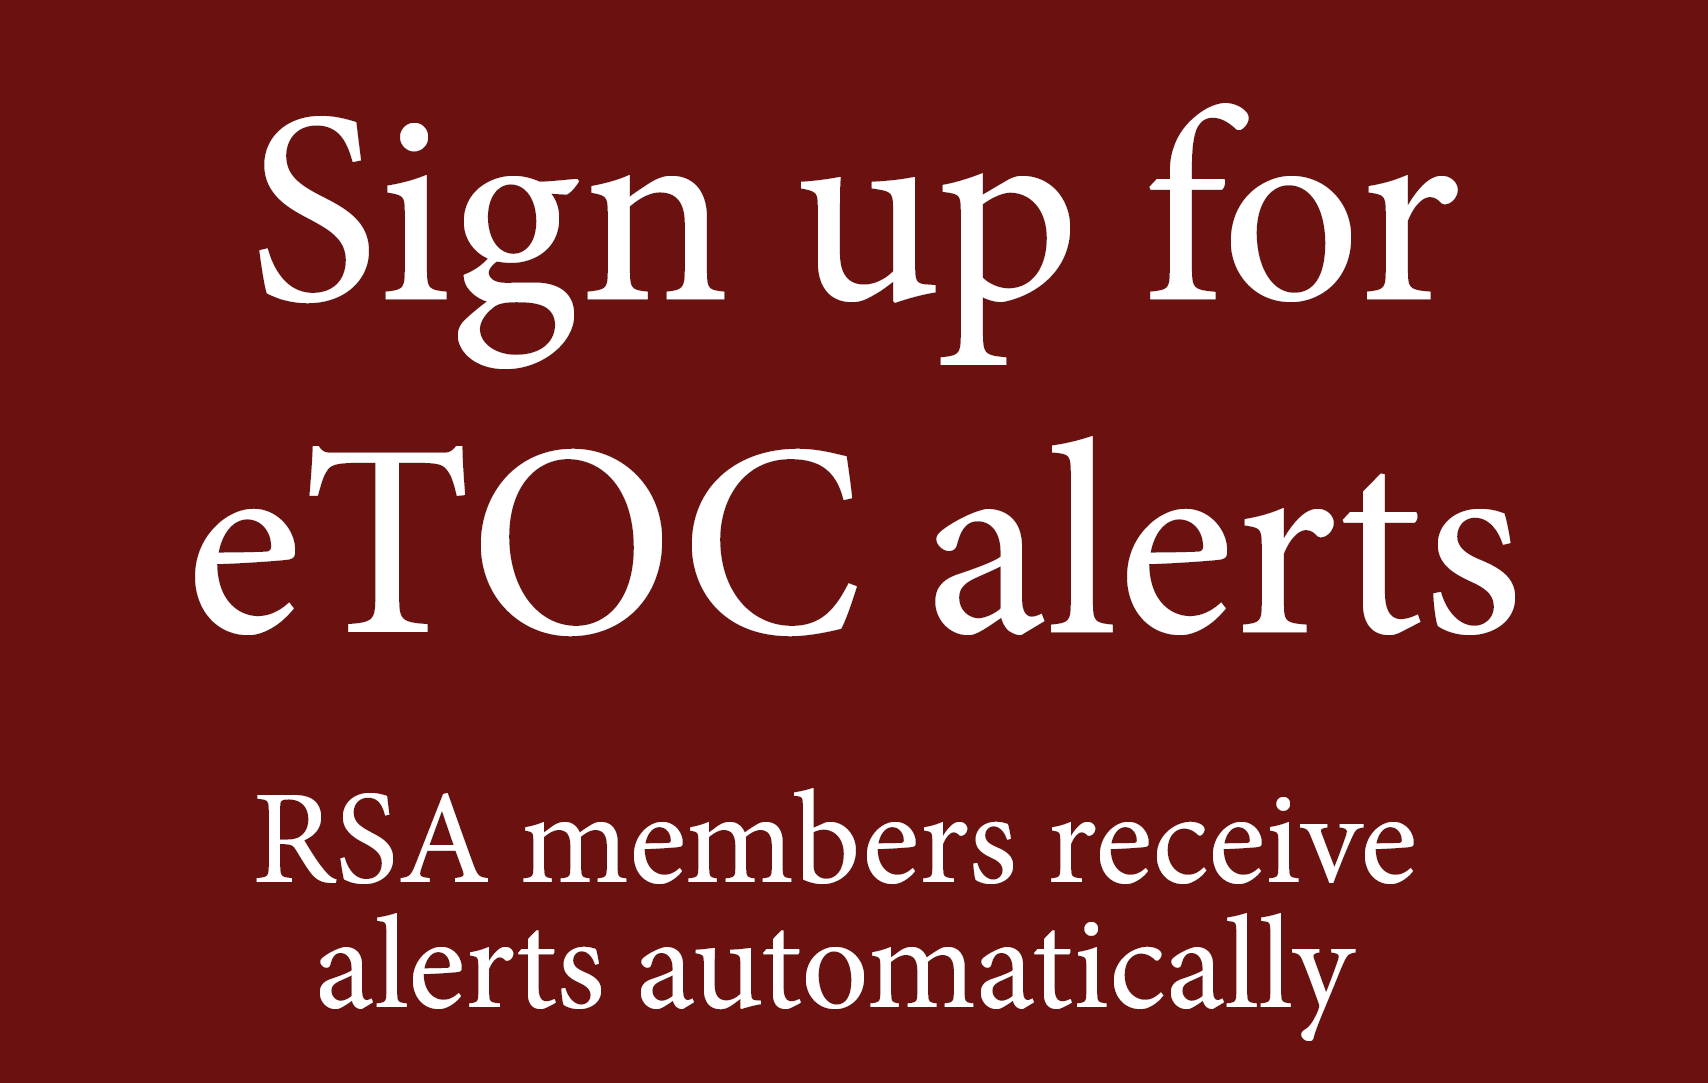 Sign up for Renaissance Quarterly email alerts